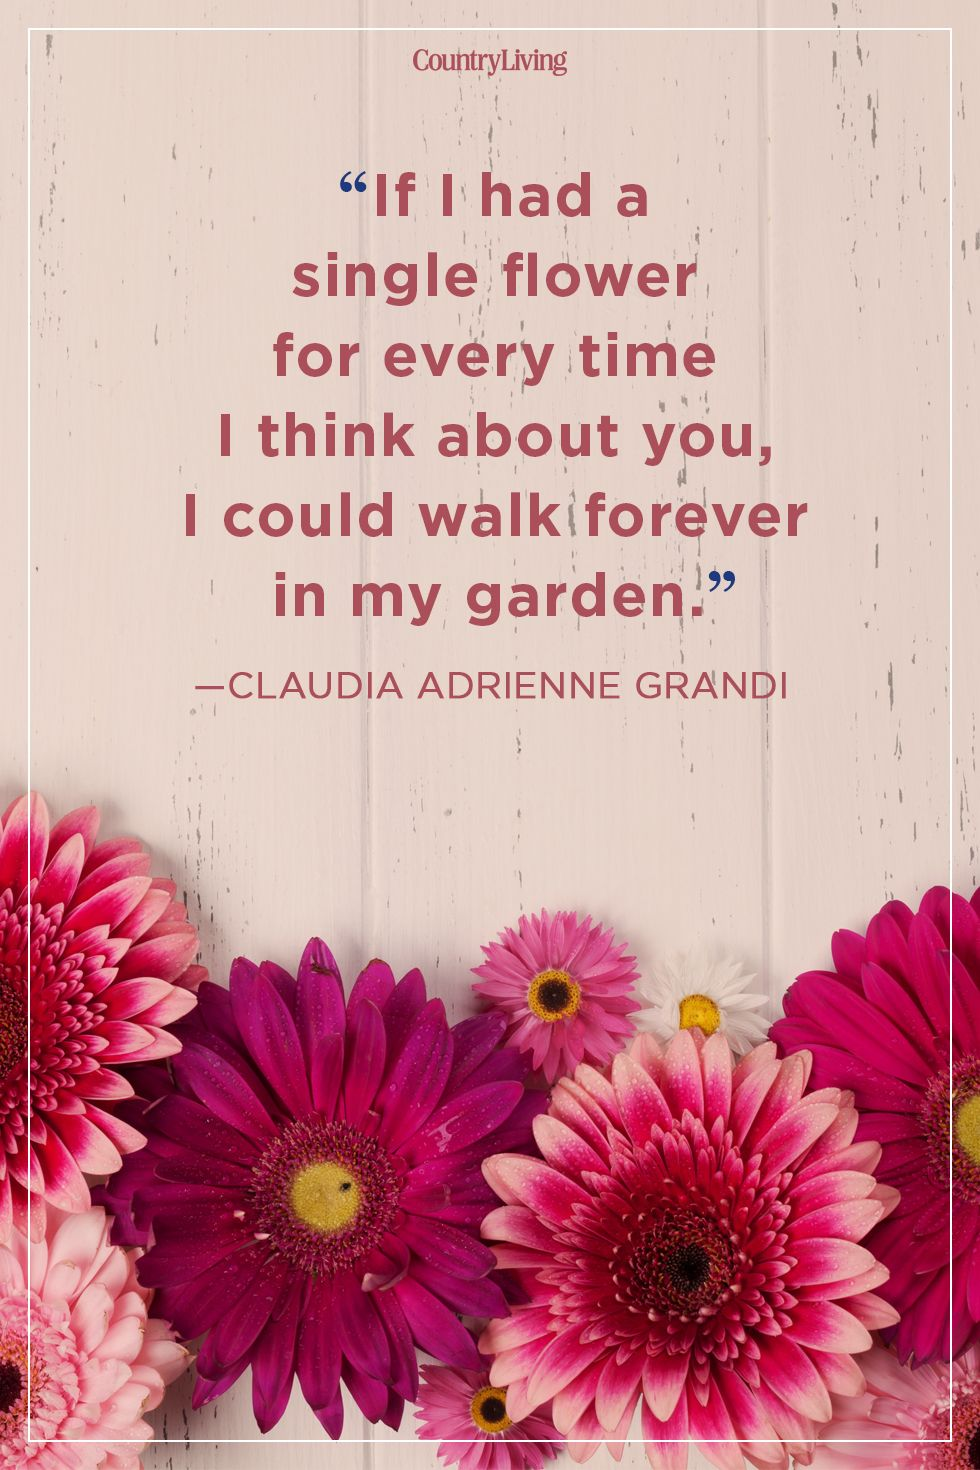 claudia adrienne grandi i miss you quote